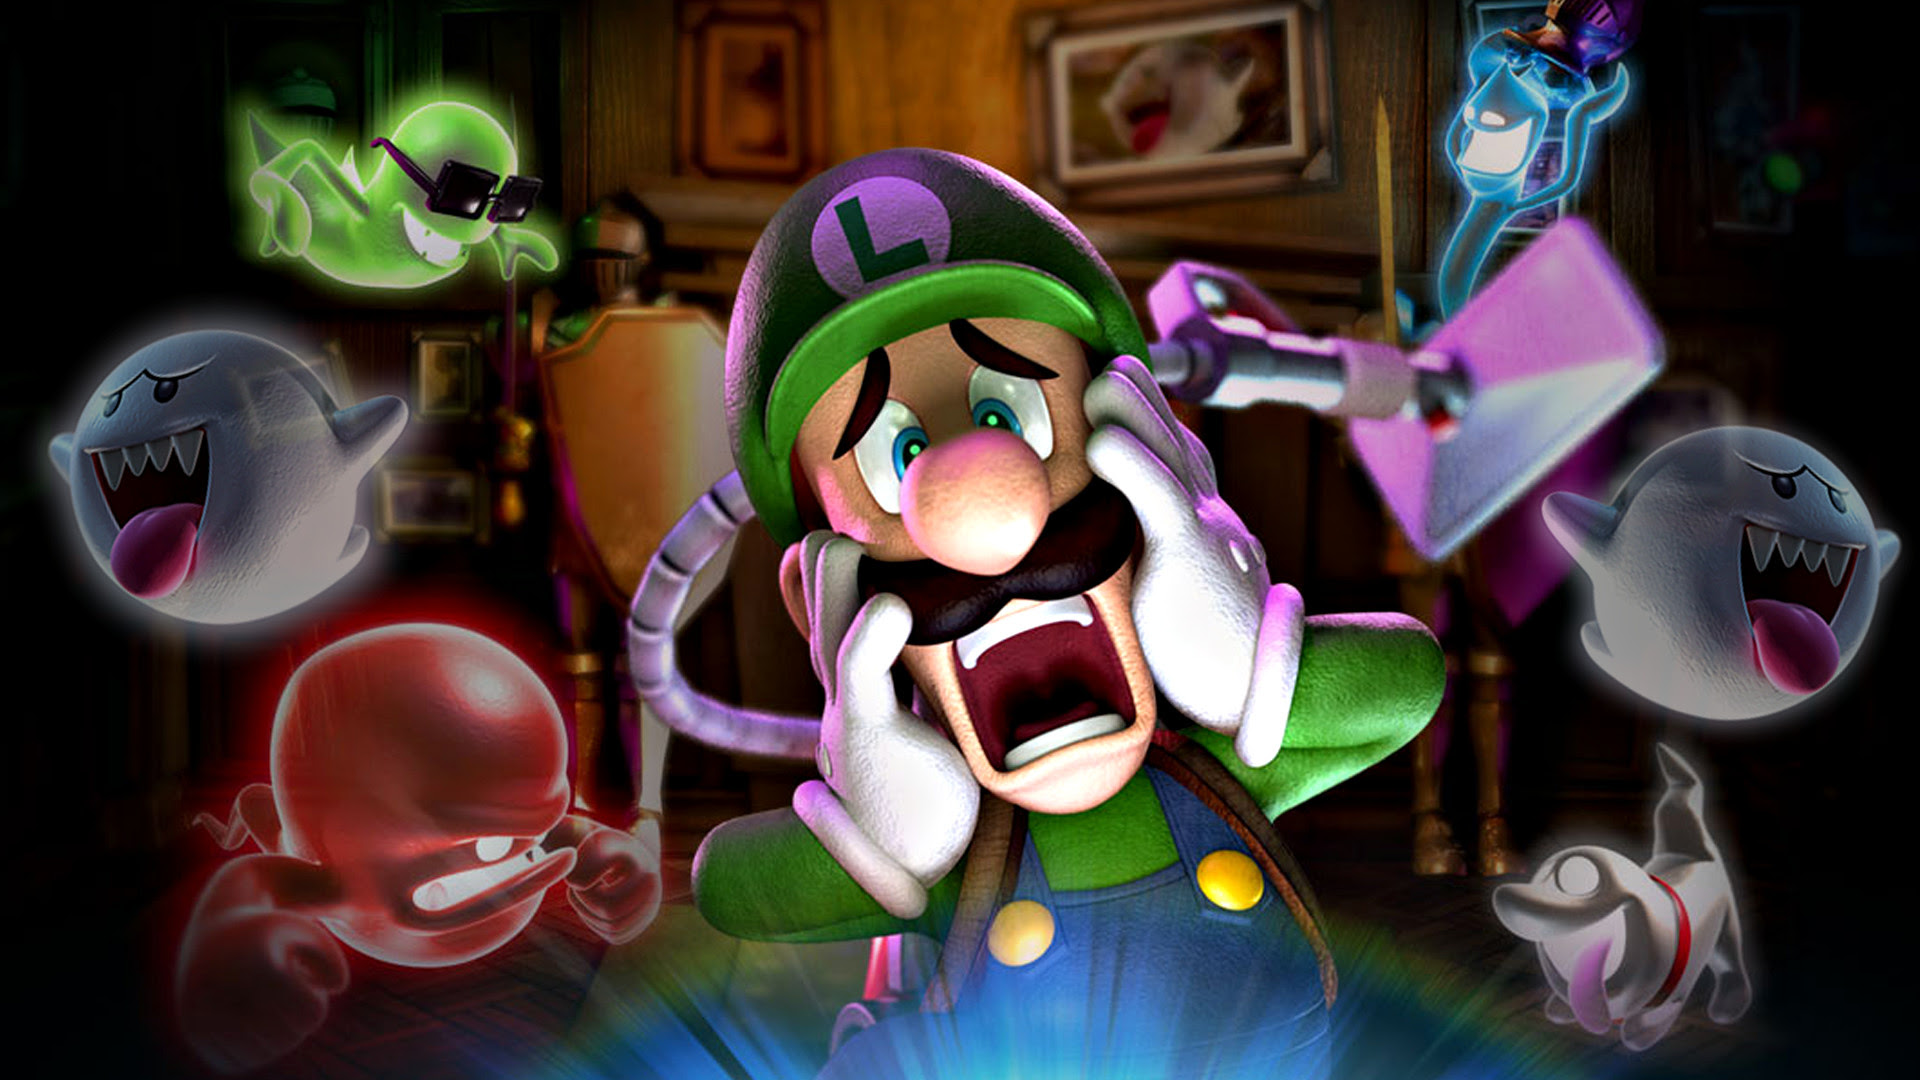 Luigis Mansion Wallpaper 64 Images